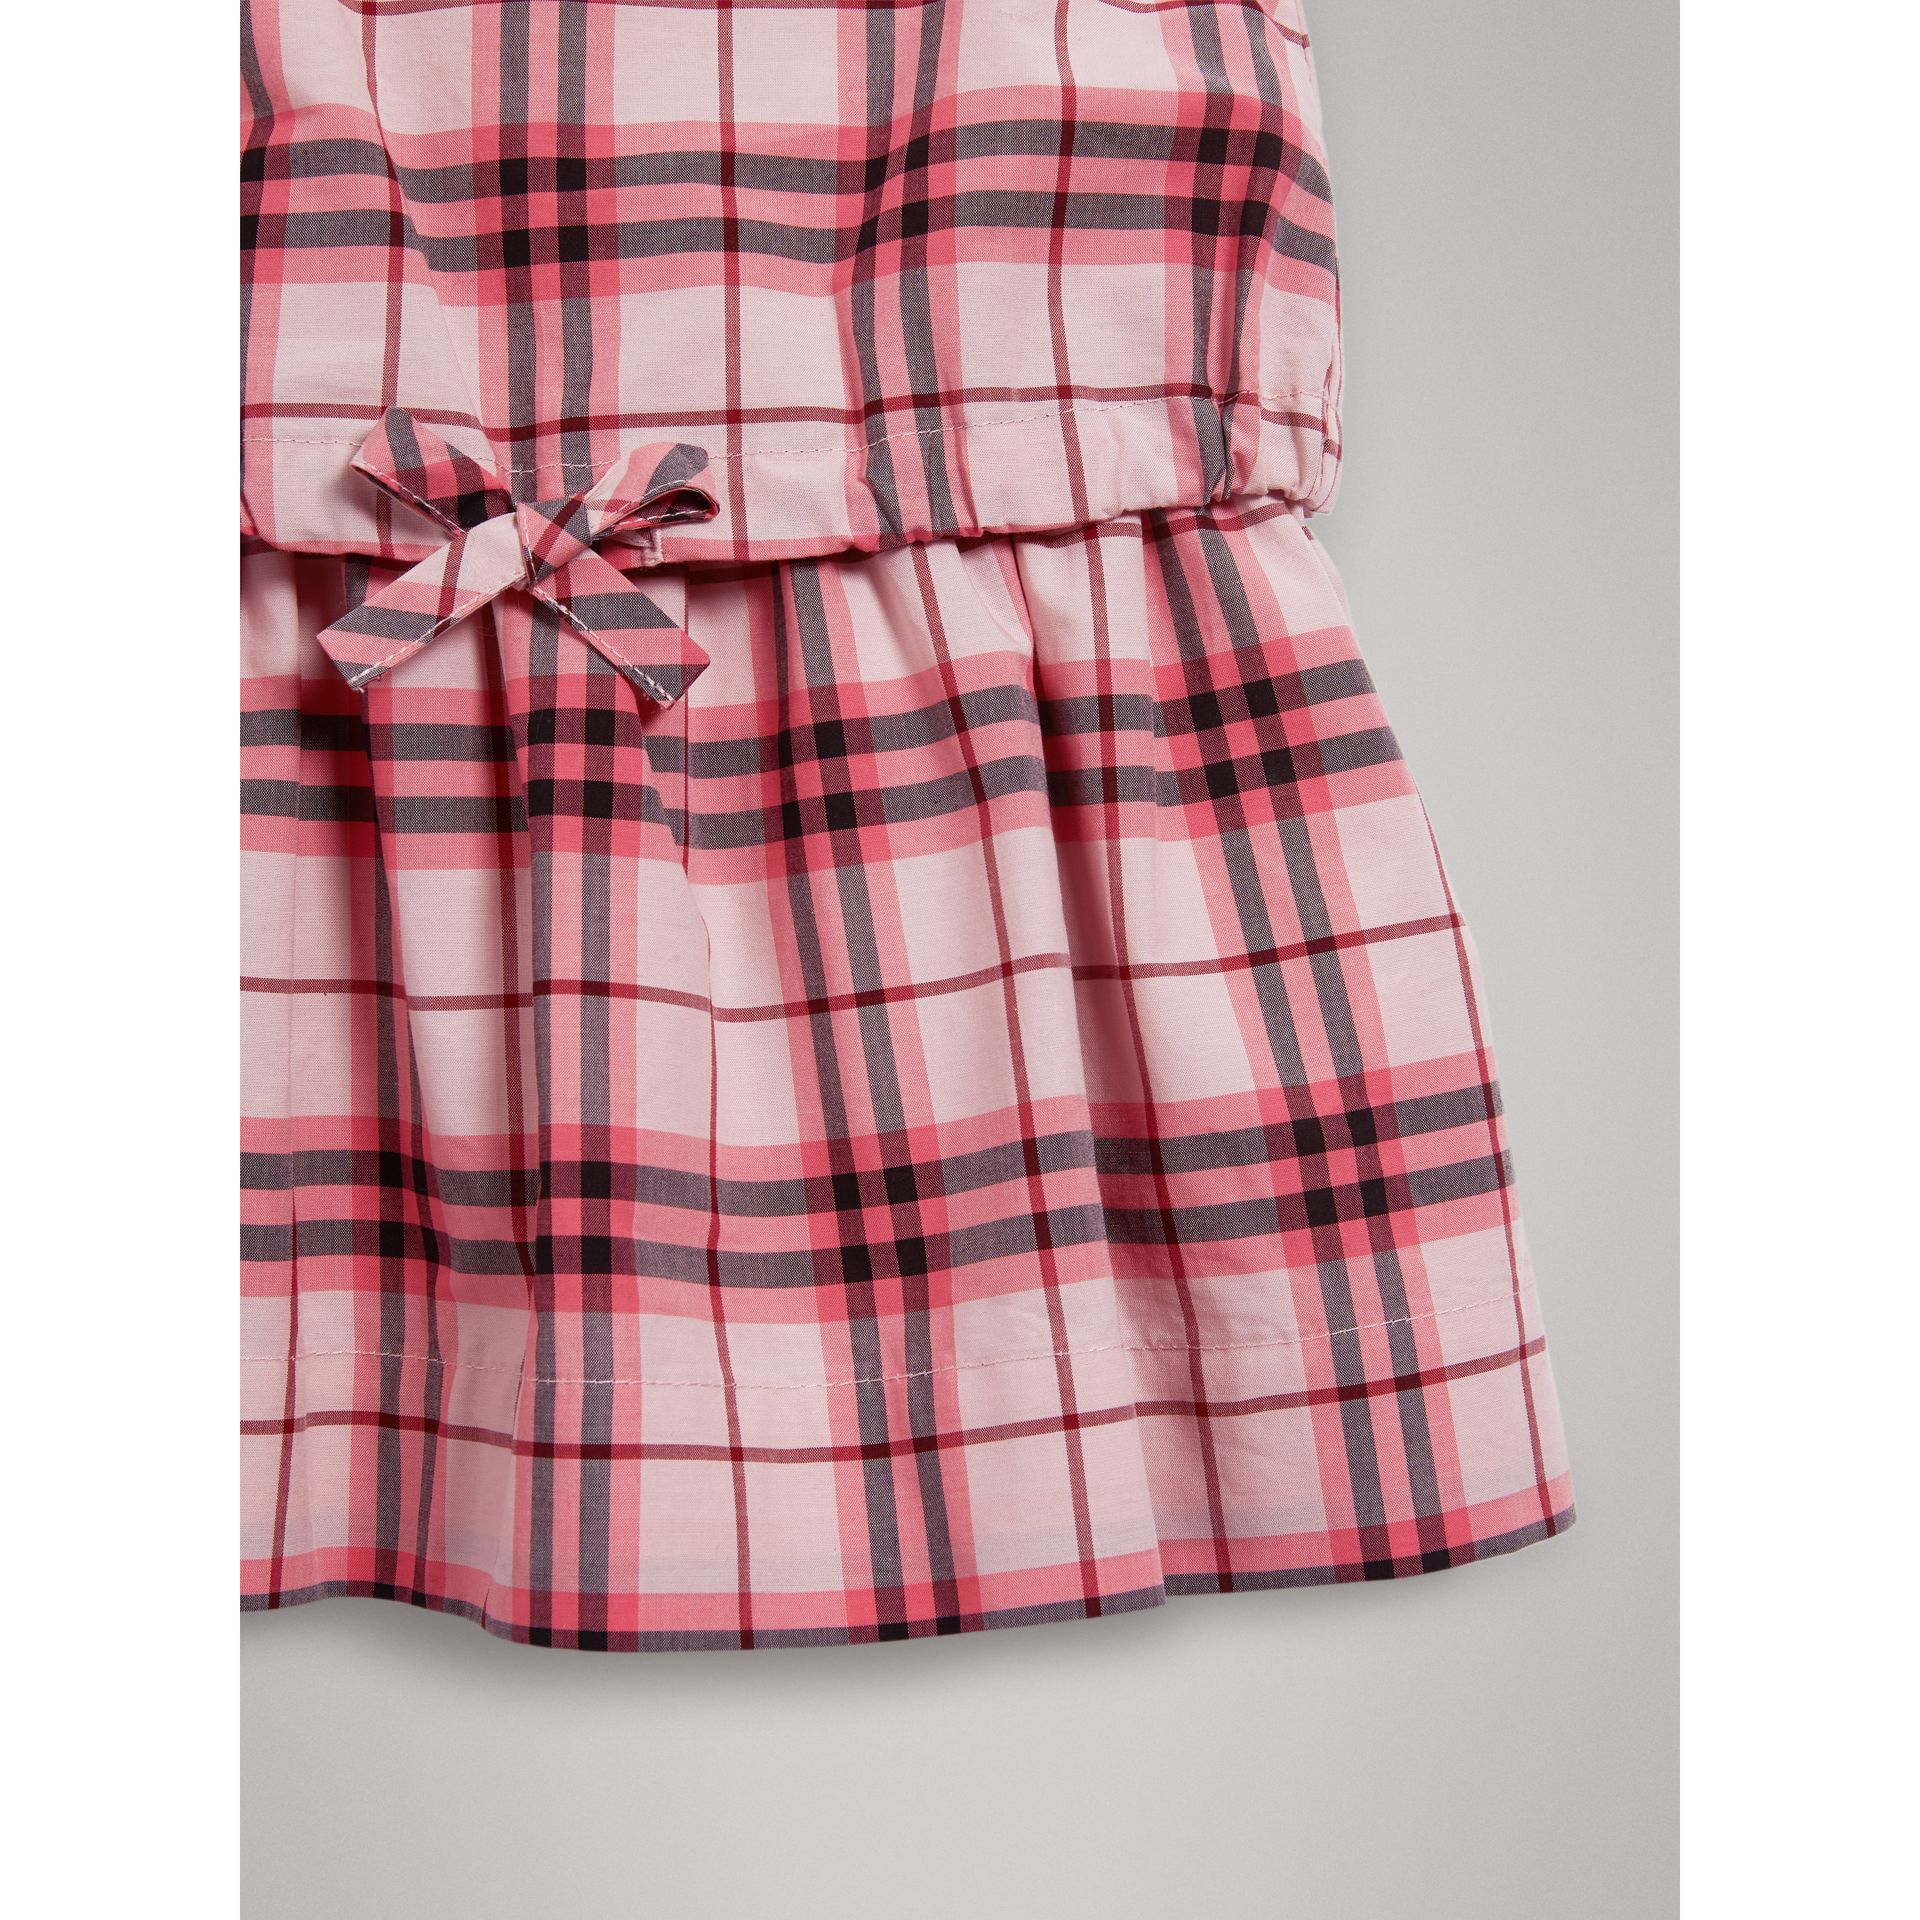 Gathered Check Cotton Dress in Bright Rose | Burberry Singapore - gallery image 4